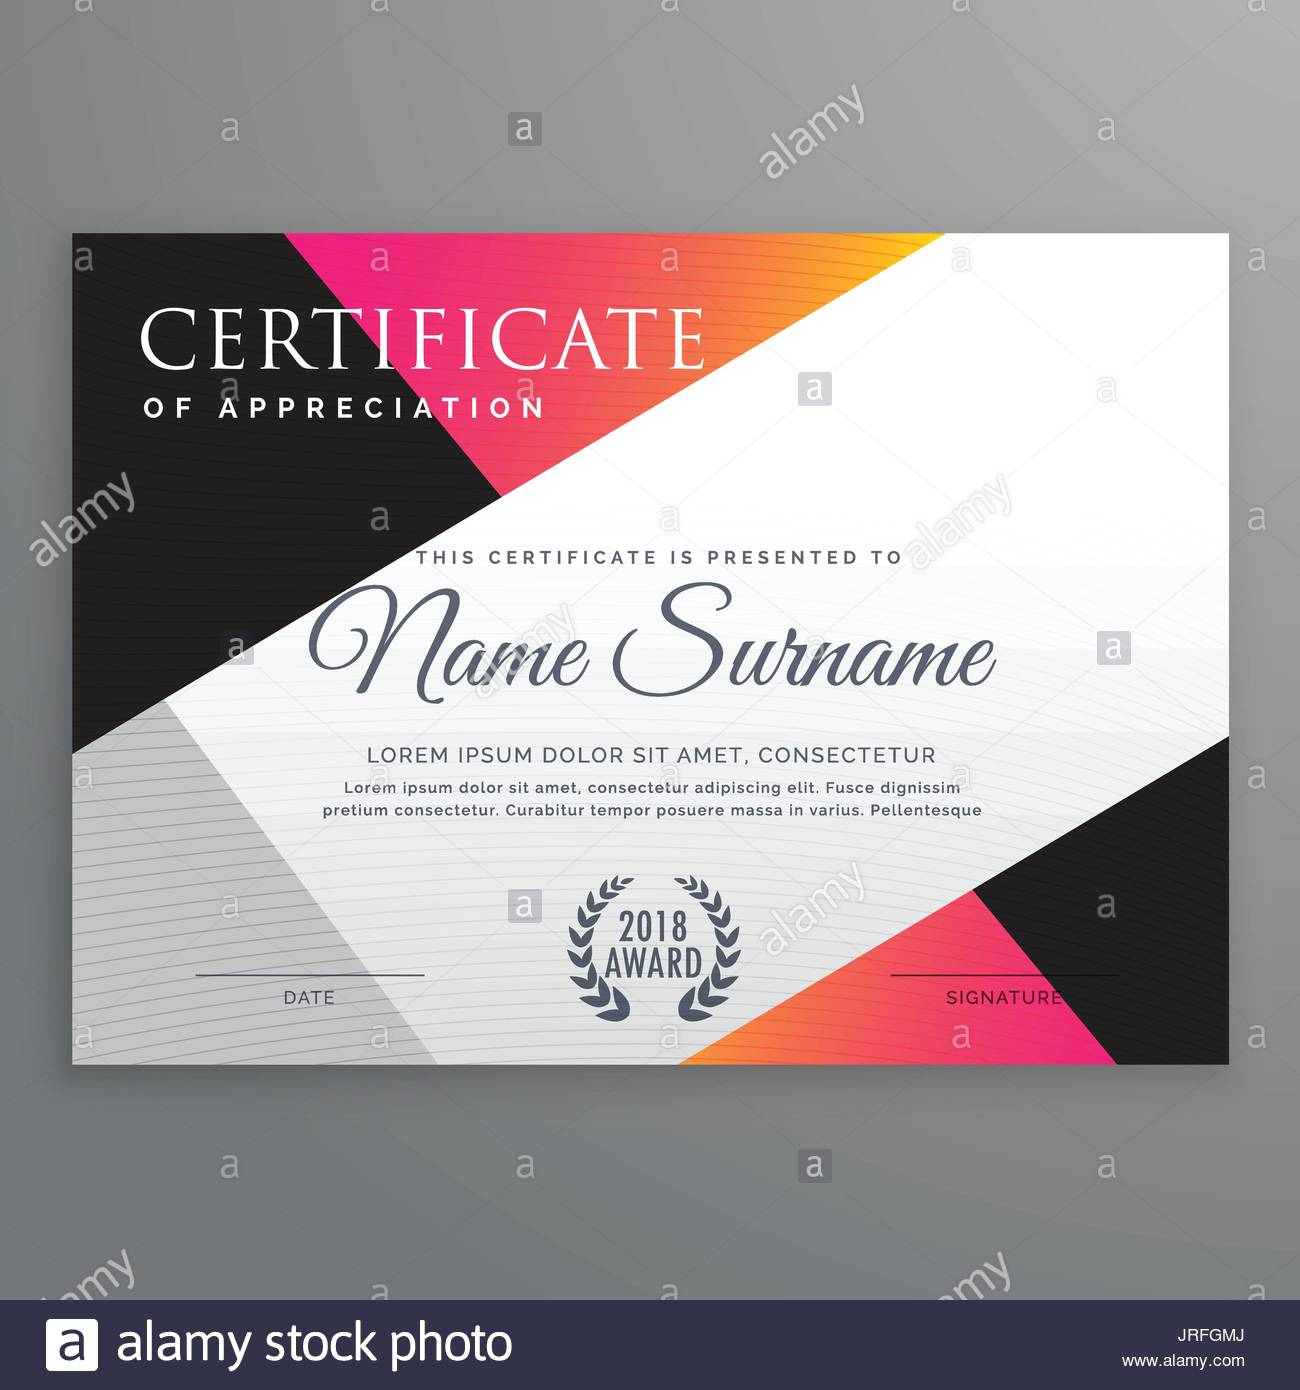 stylish certificate design template with minimal poly shapes stock